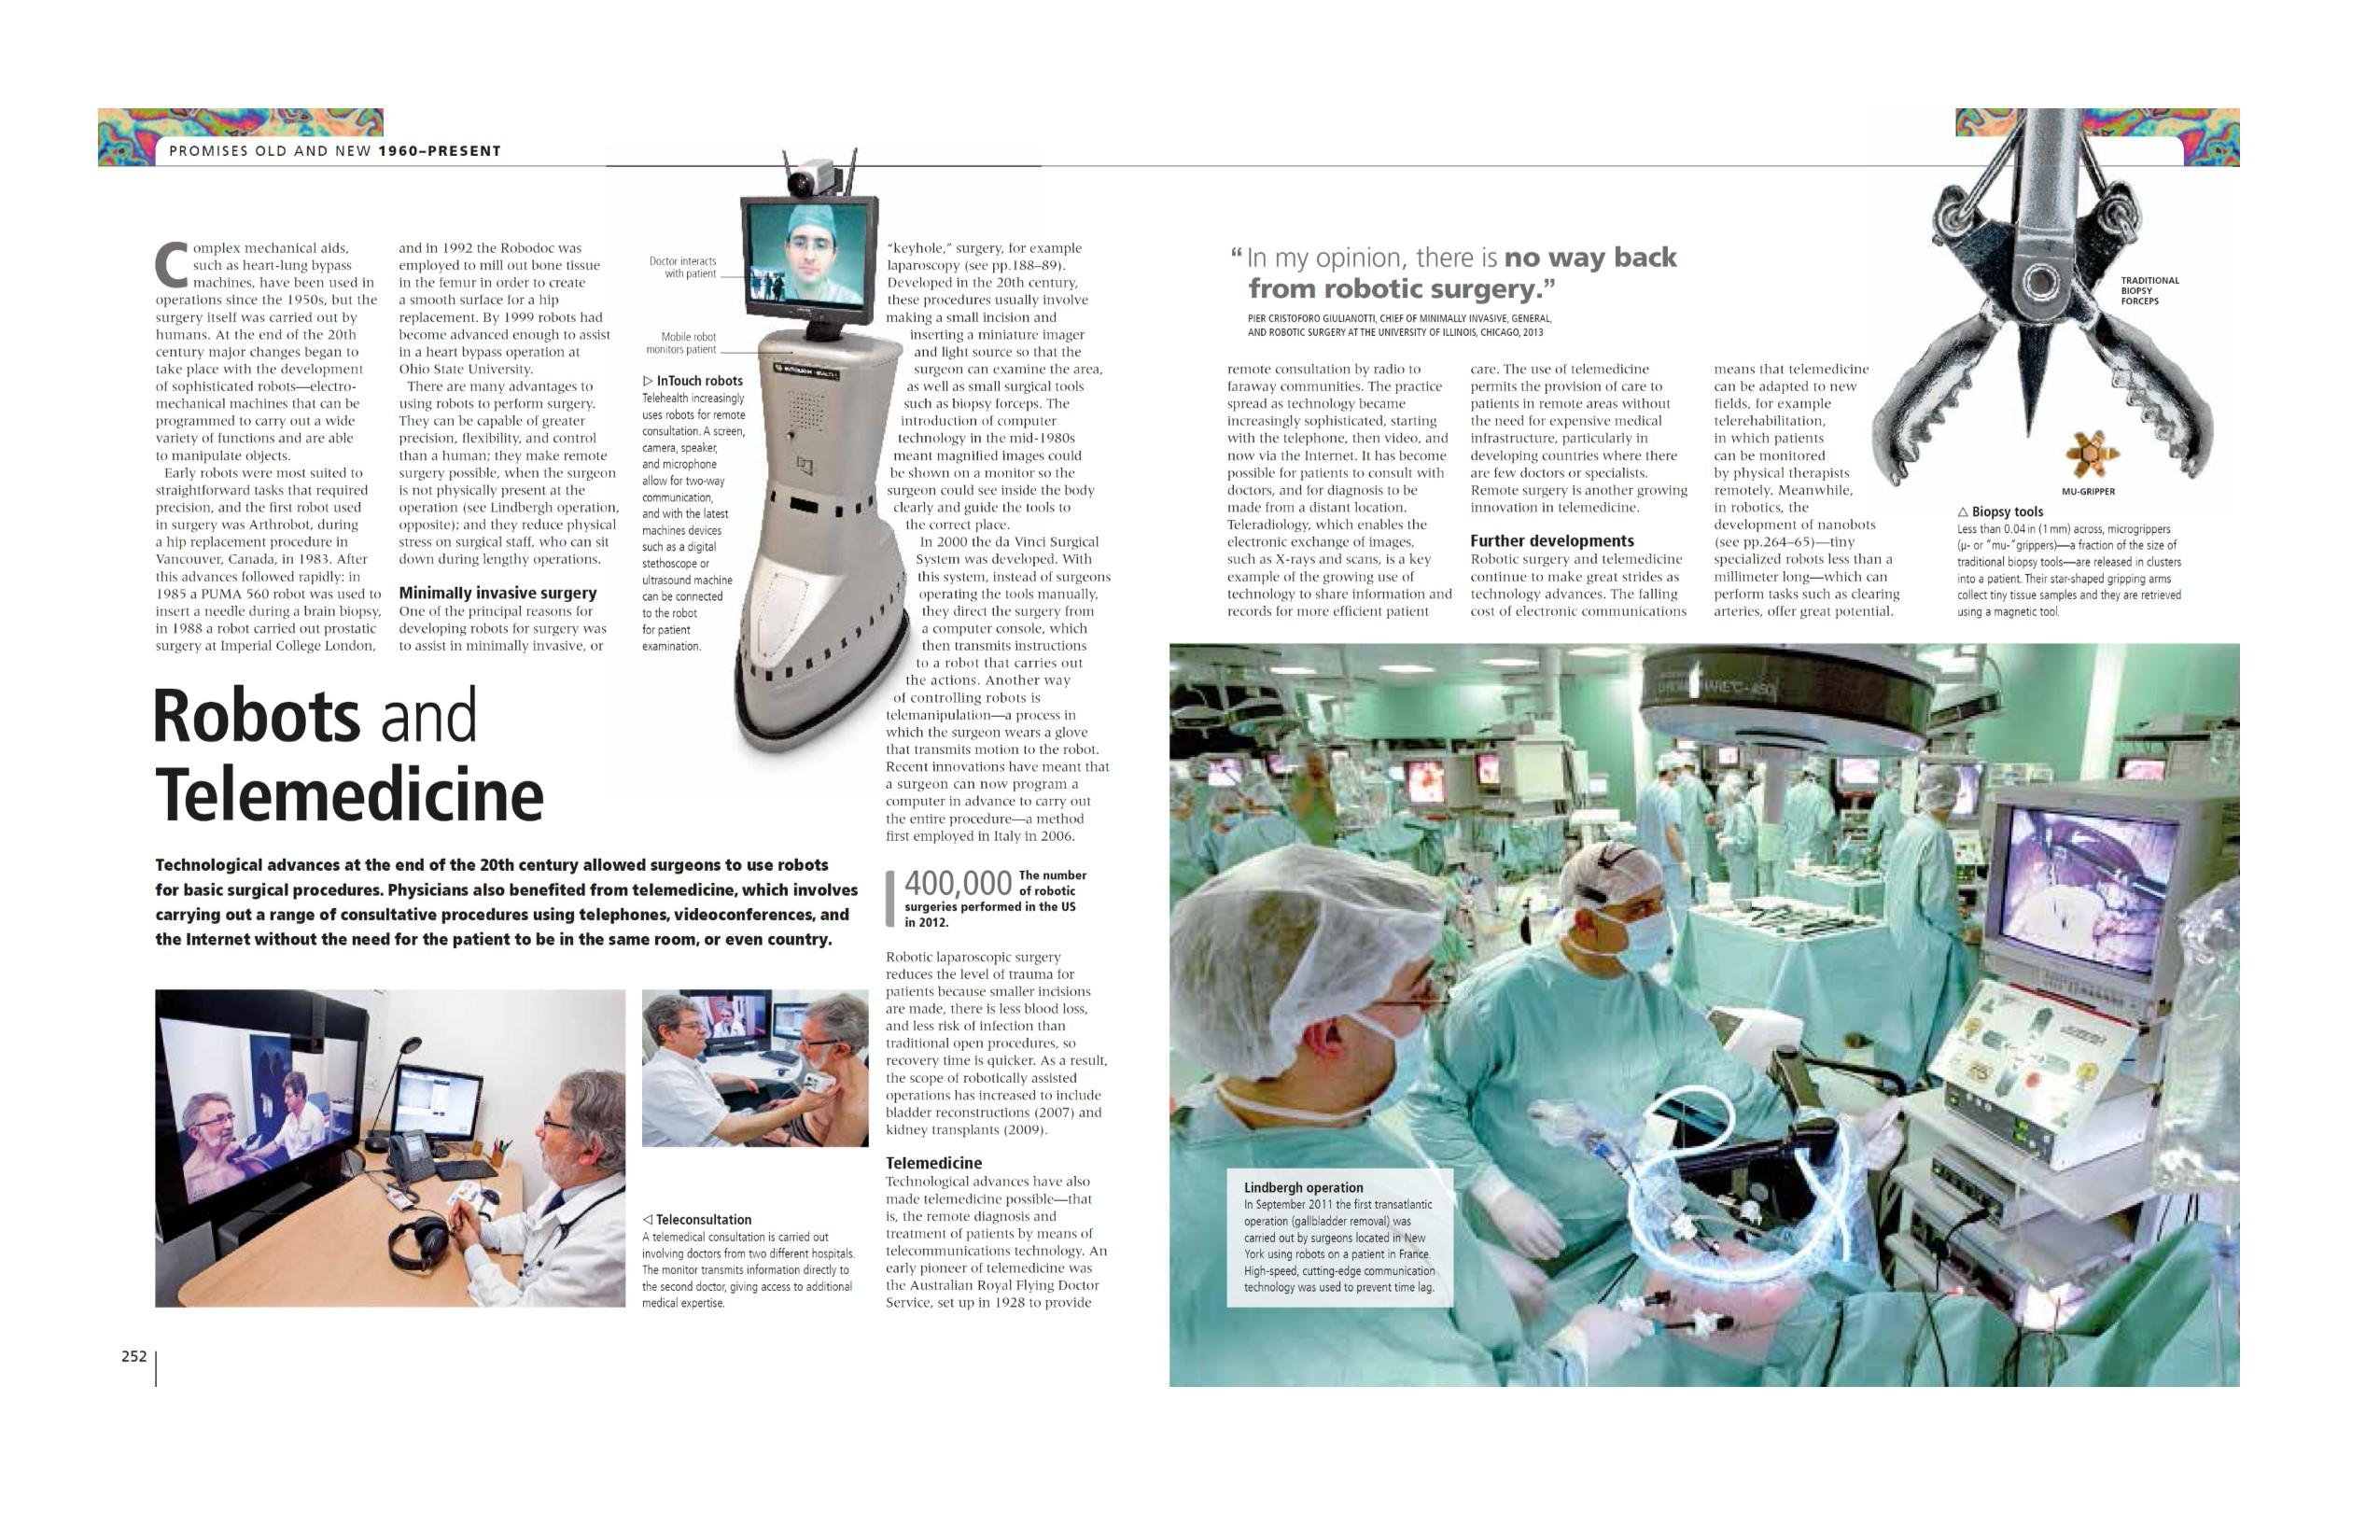 Medicine The Definitive Illustrated History Dk 9781465453419 Remote Stethoscope Concept Diagram View Larger